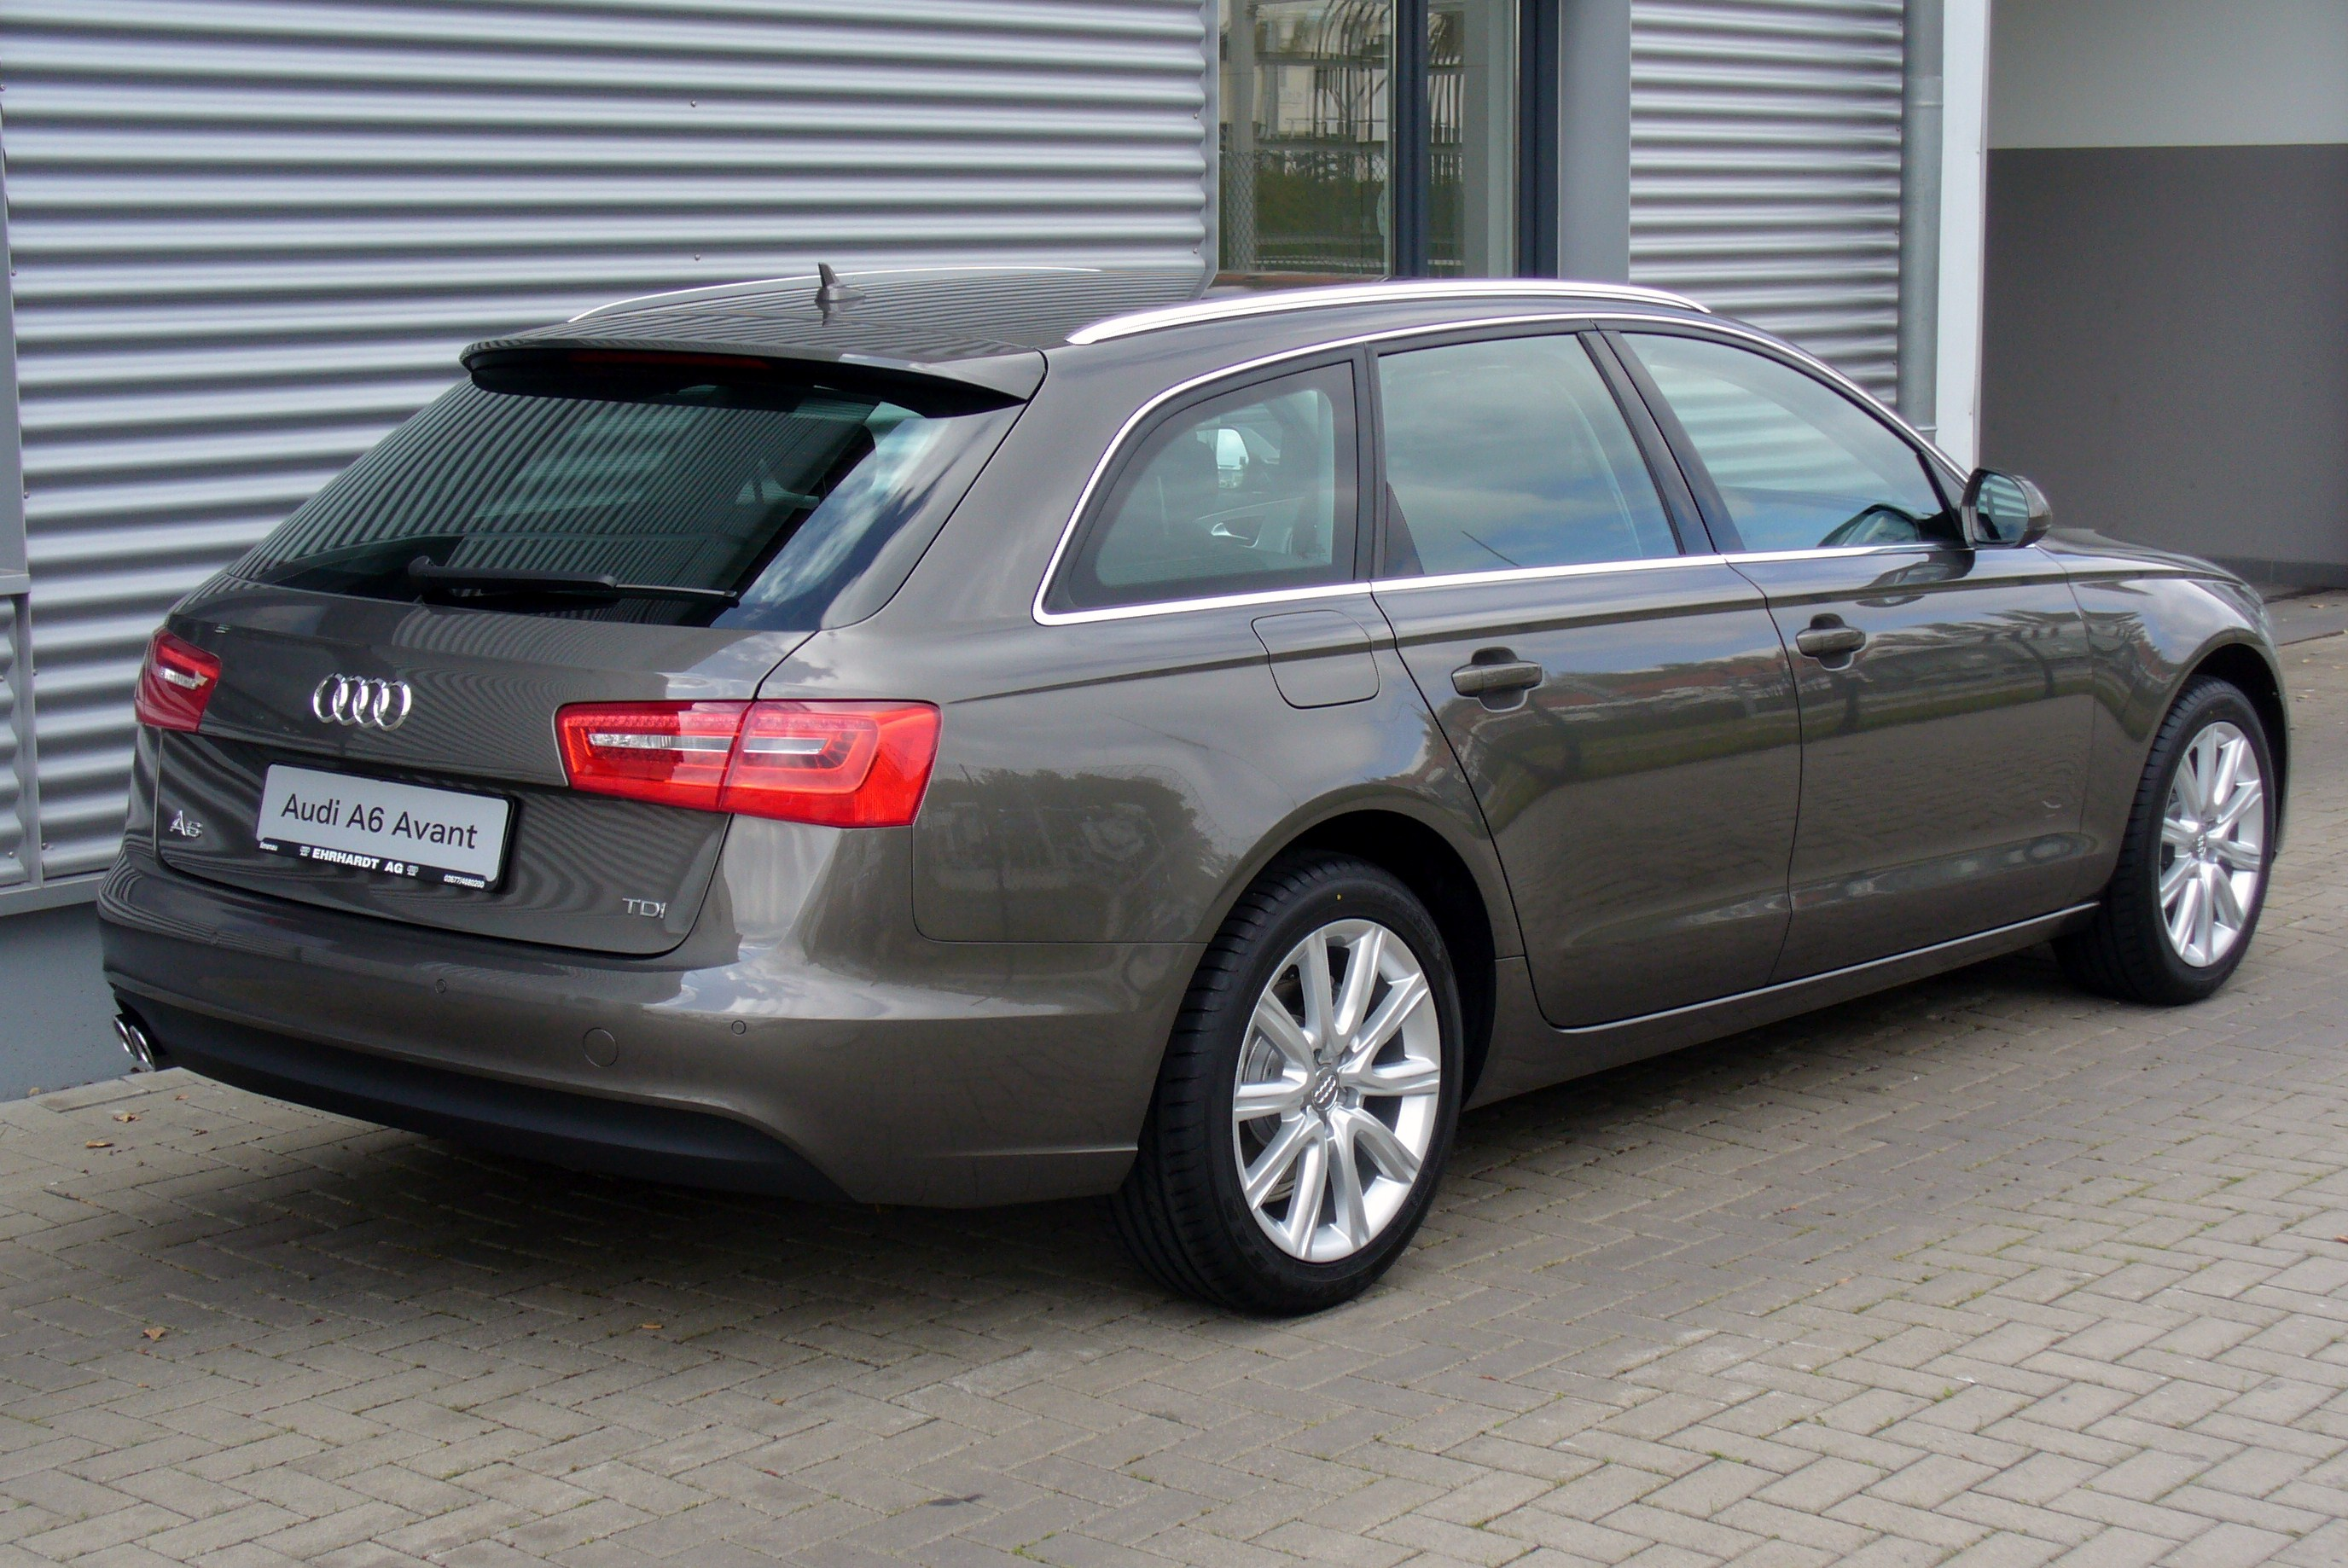 2014 audi a6 avant c7 pictures information and specs auto. Black Bedroom Furniture Sets. Home Design Ideas